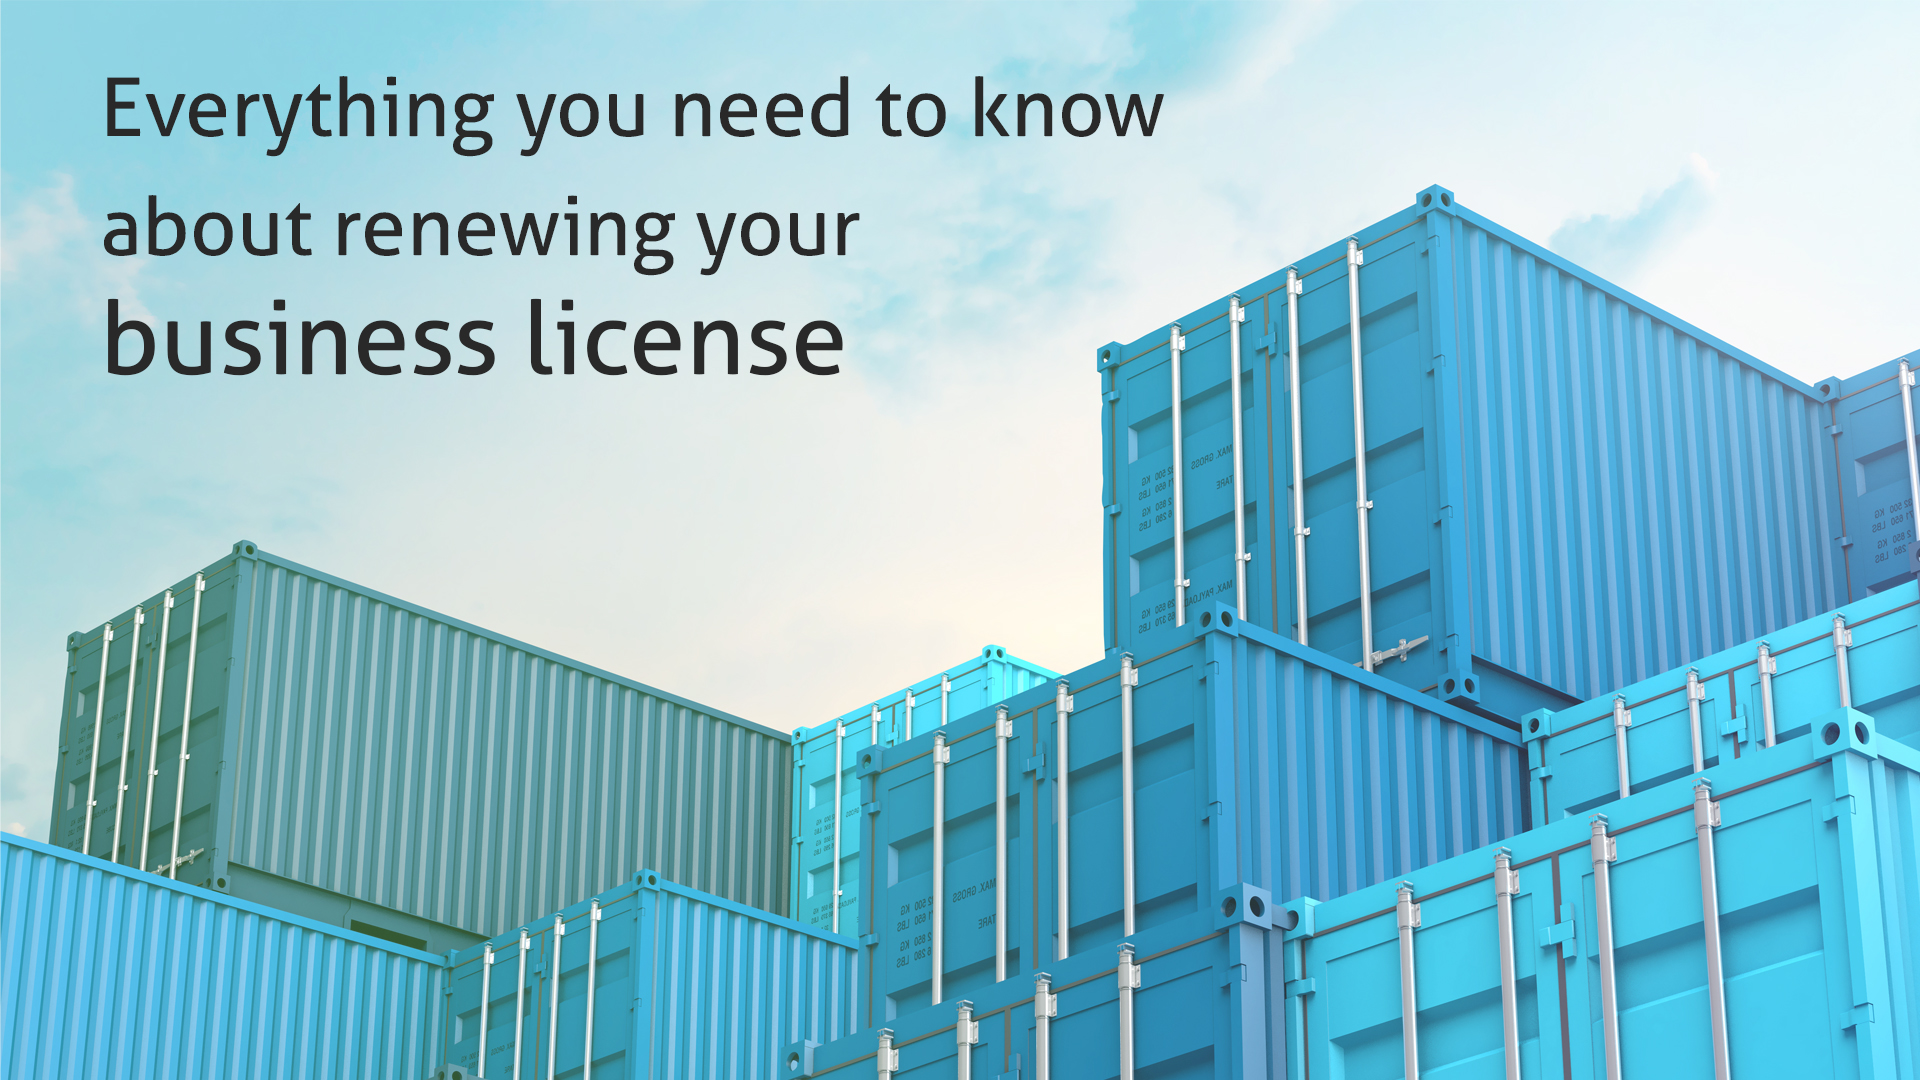 Everything you need to know about renewing your business license